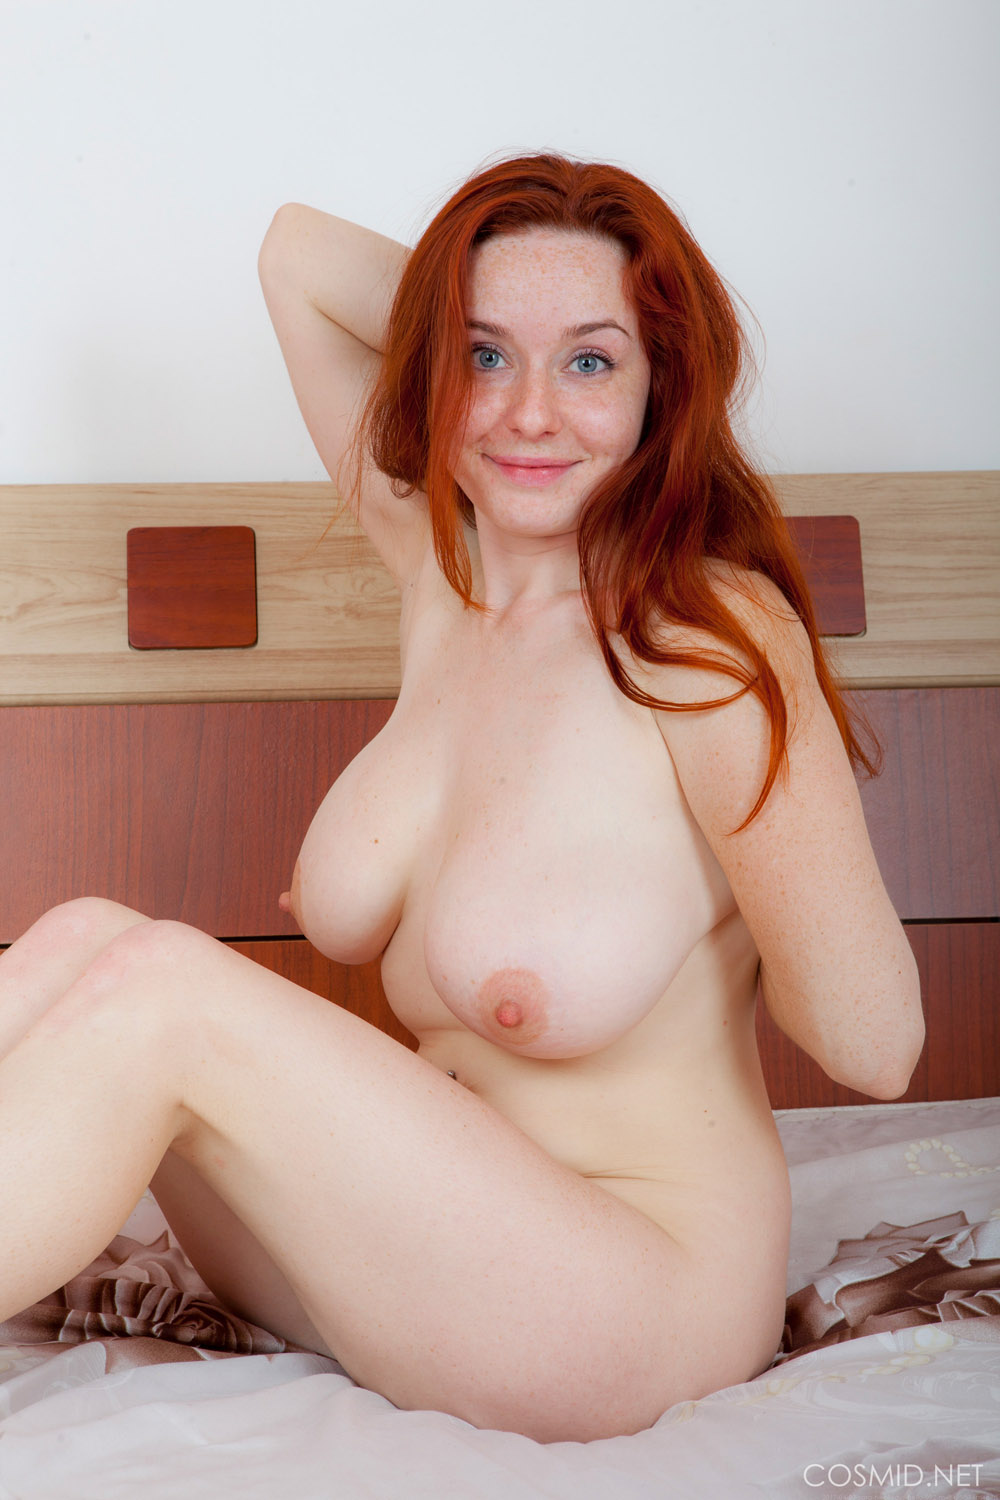 Free busty redhead pictures and movies